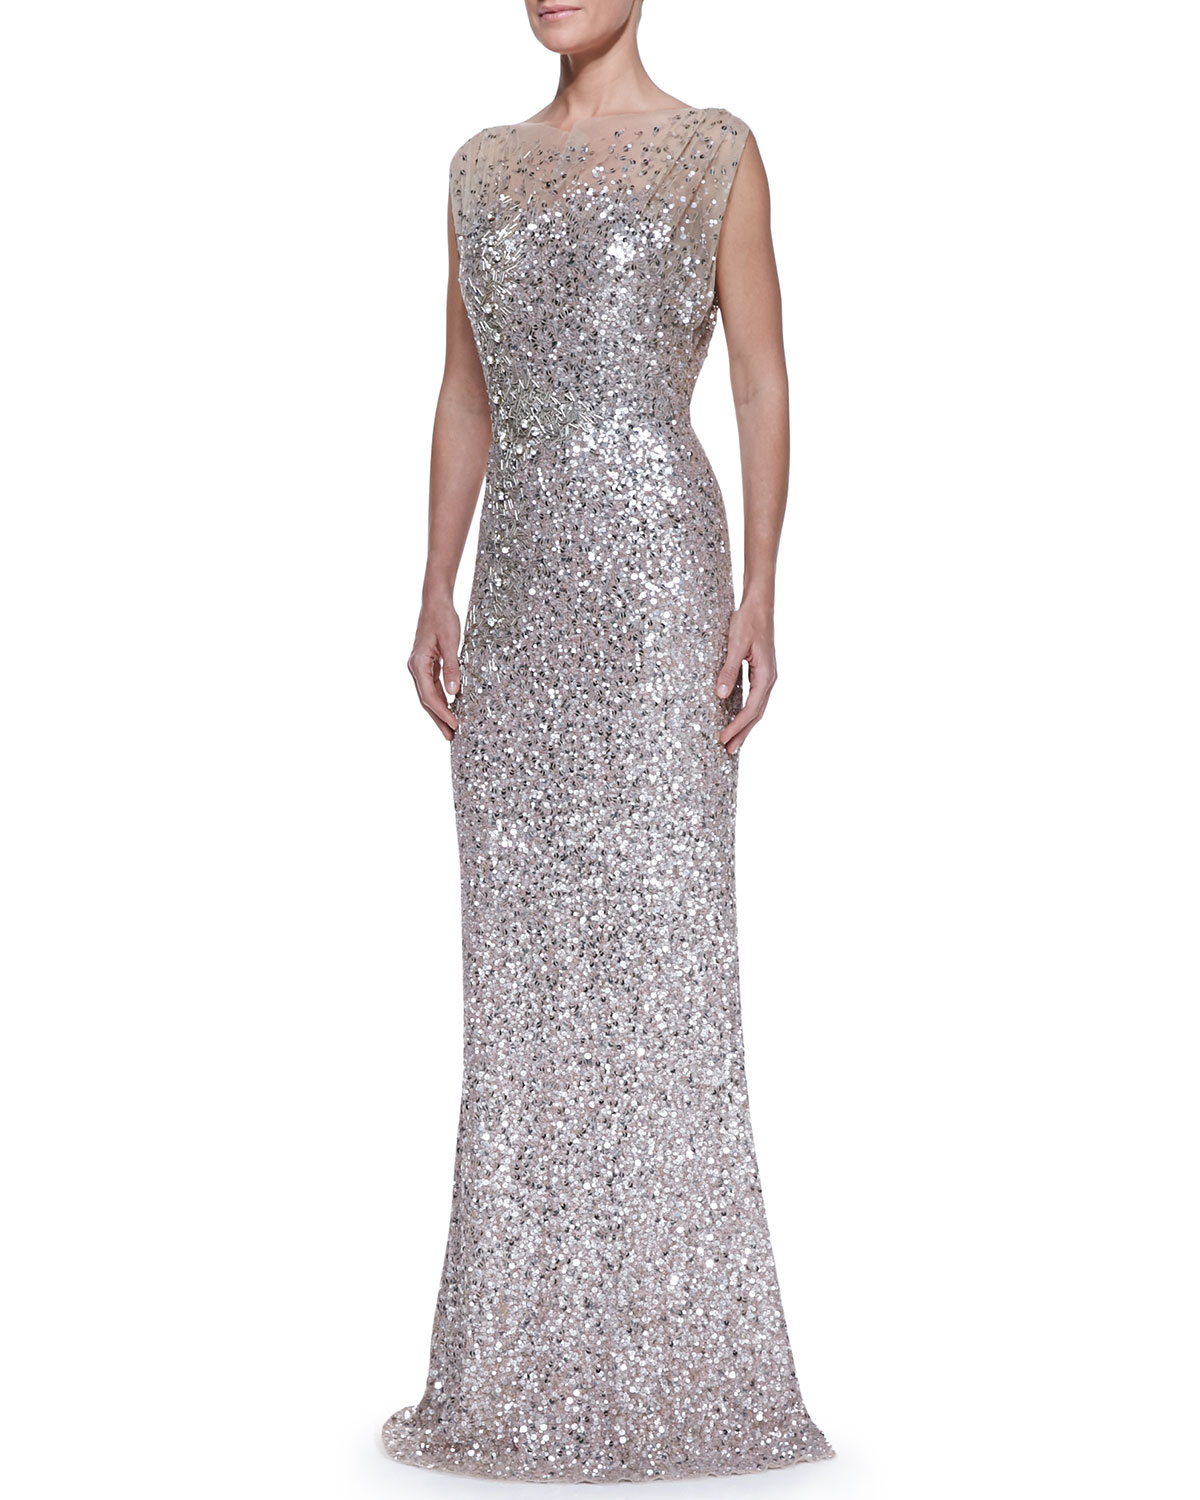 Jenny Packham Beaded & Sequined Gown, Silver/Nude | Neiman Marcus